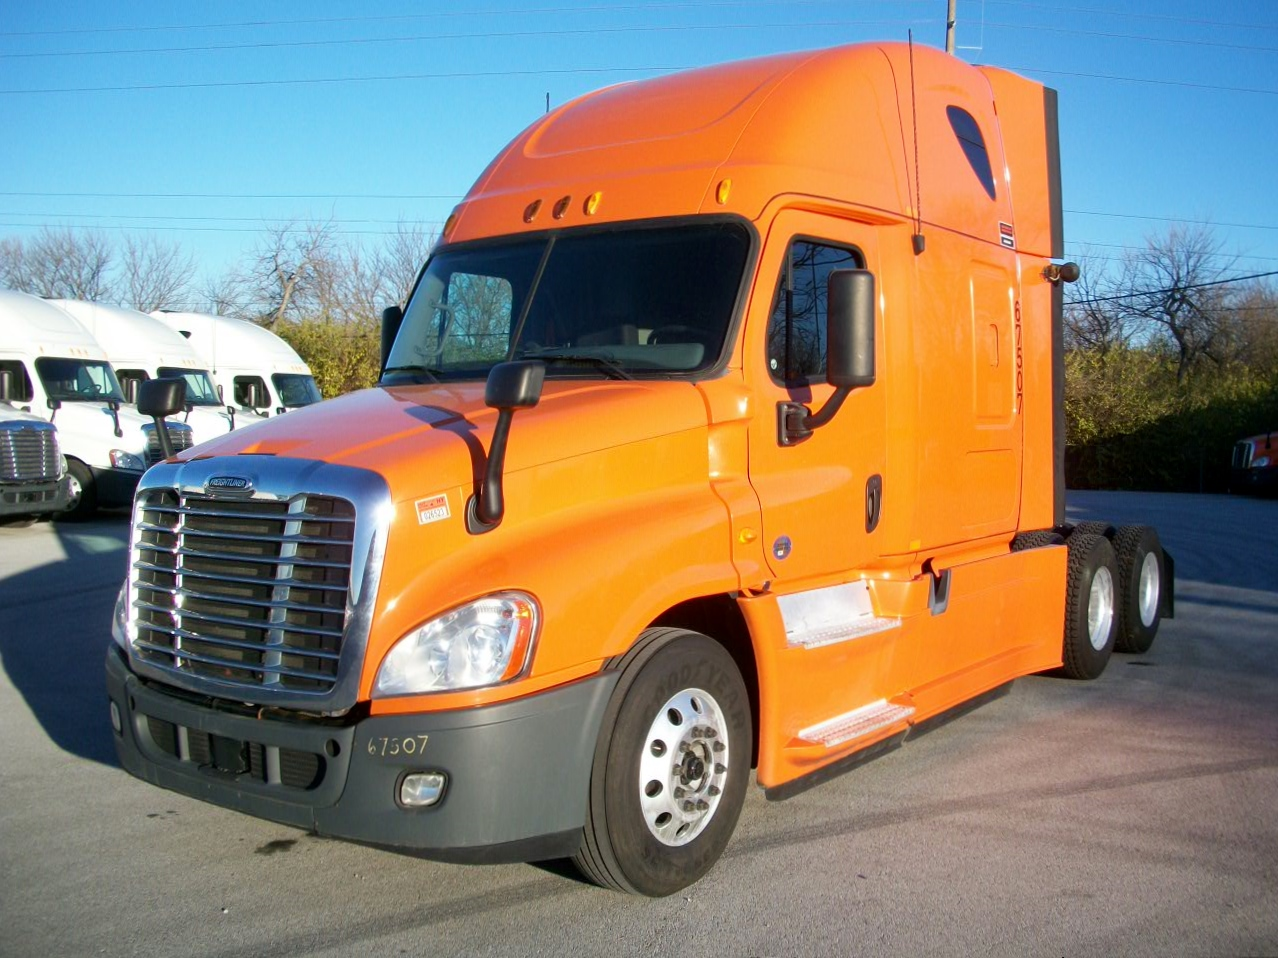 USED 2013 FREIGHTLINER CASCADIA DAYCAB TRUCK #105172